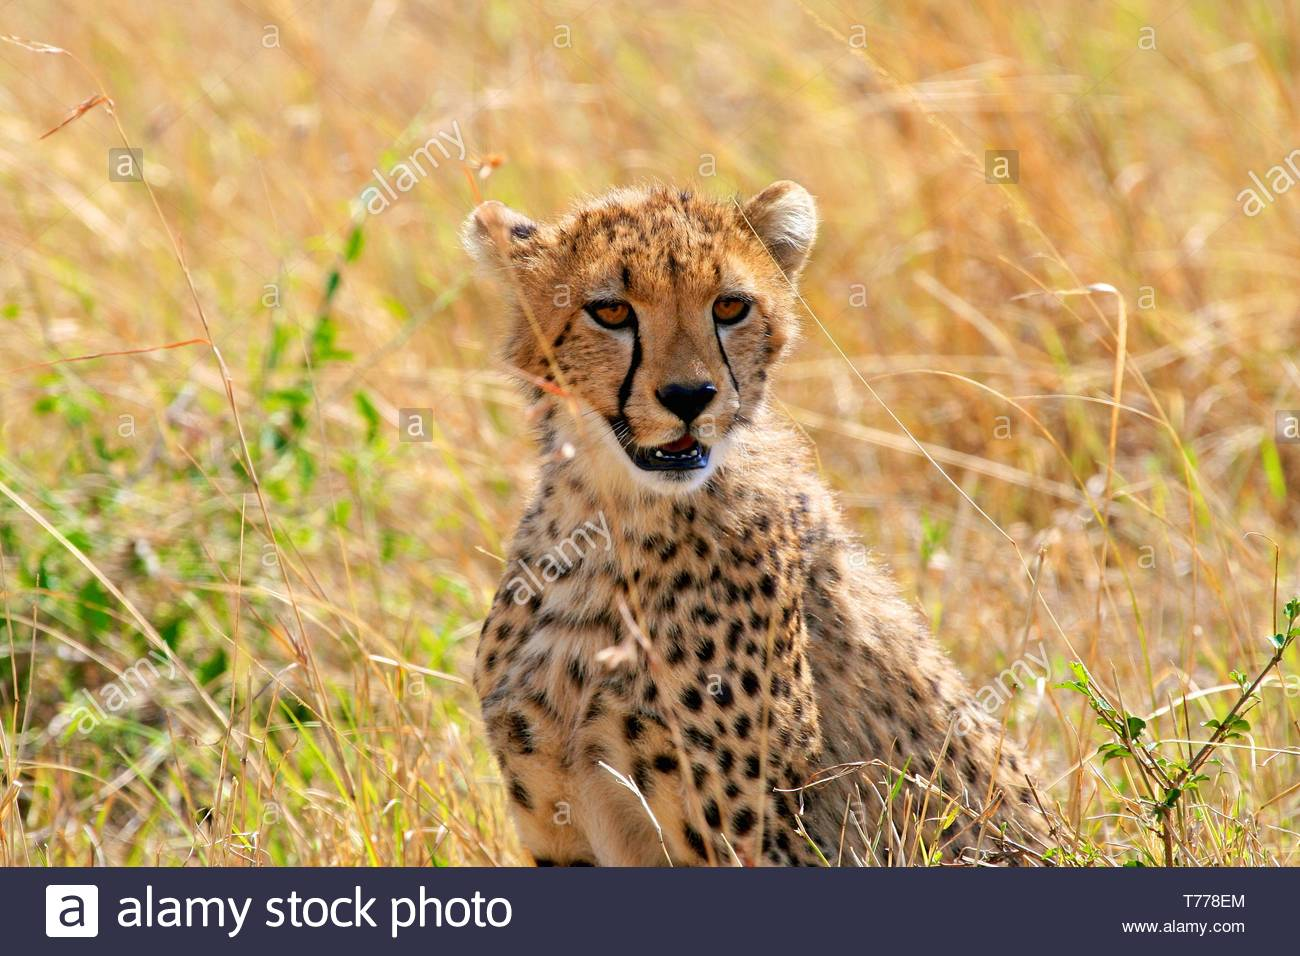 Cheetah in the park - Stock Image